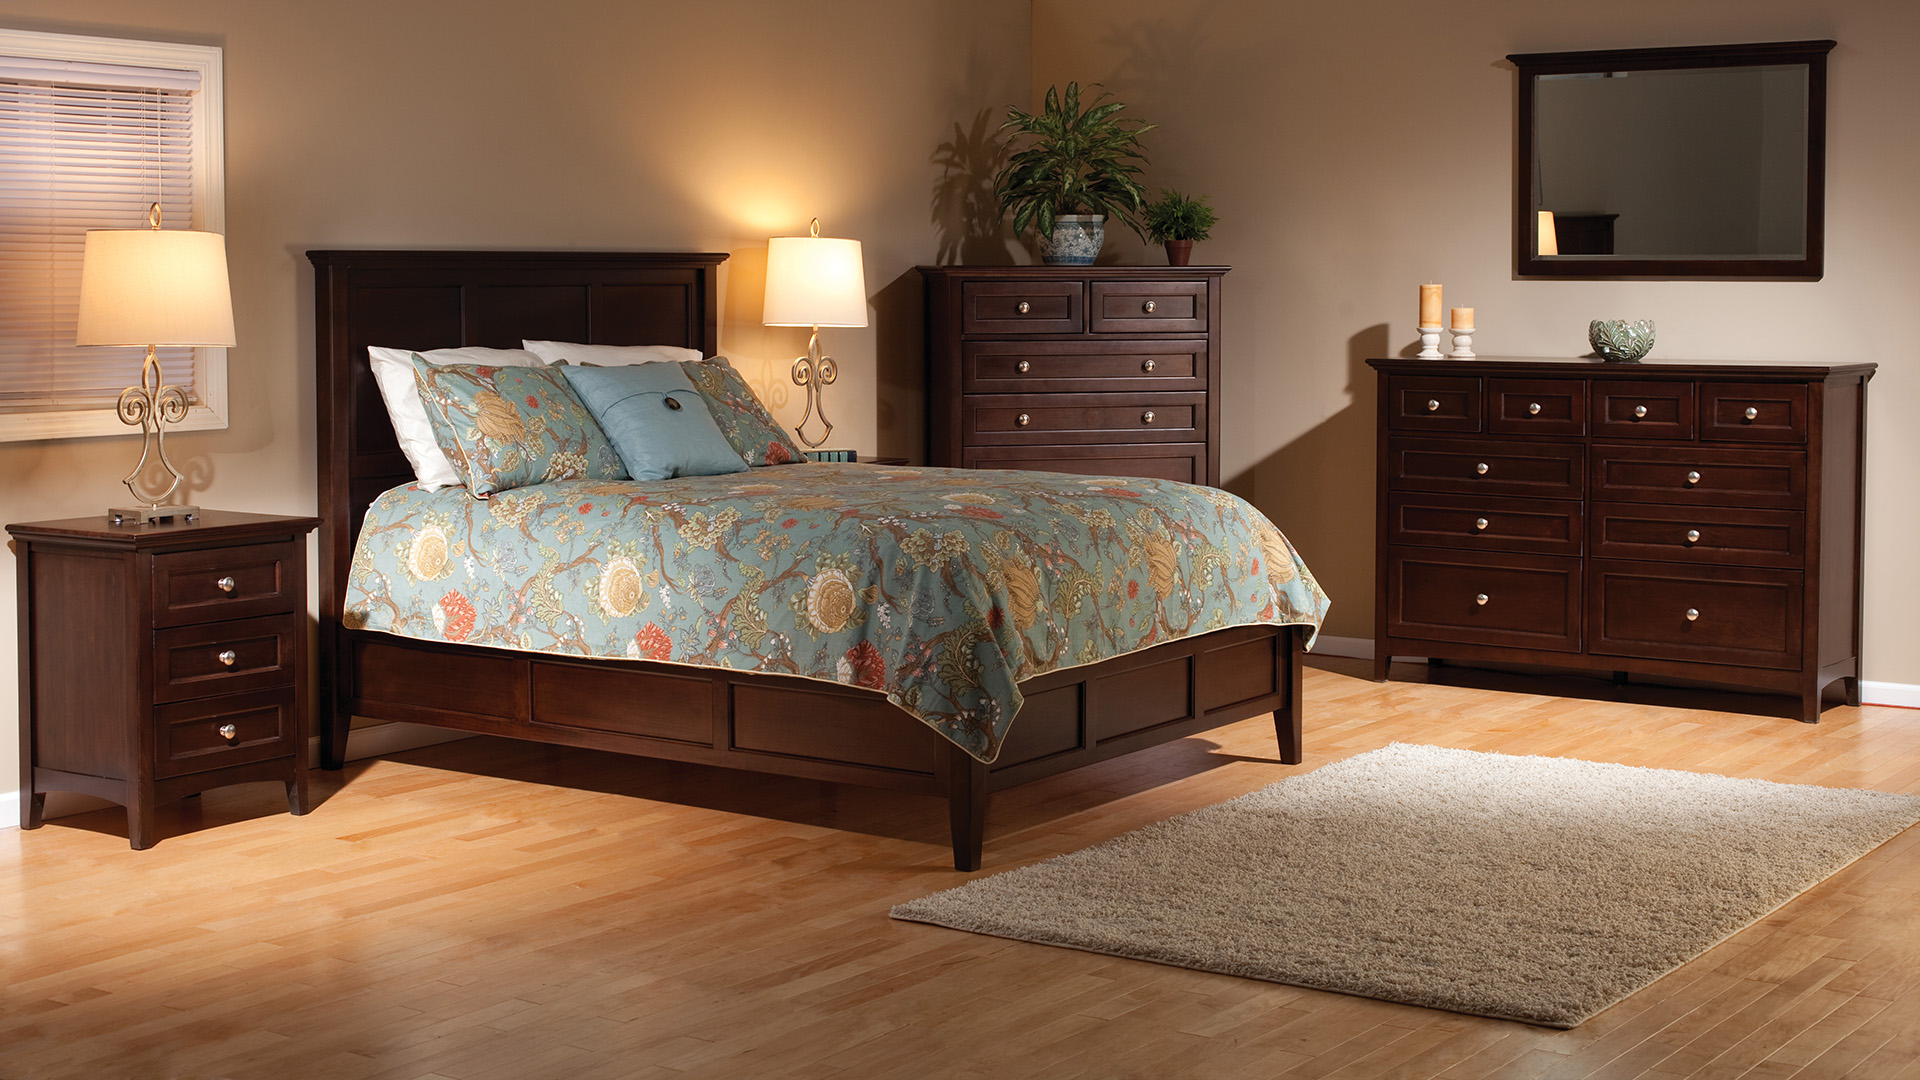 Quality Wood Bedroom Furniture Bedroom Furniture Finished And Unfinished Wood At The Wooden Chair